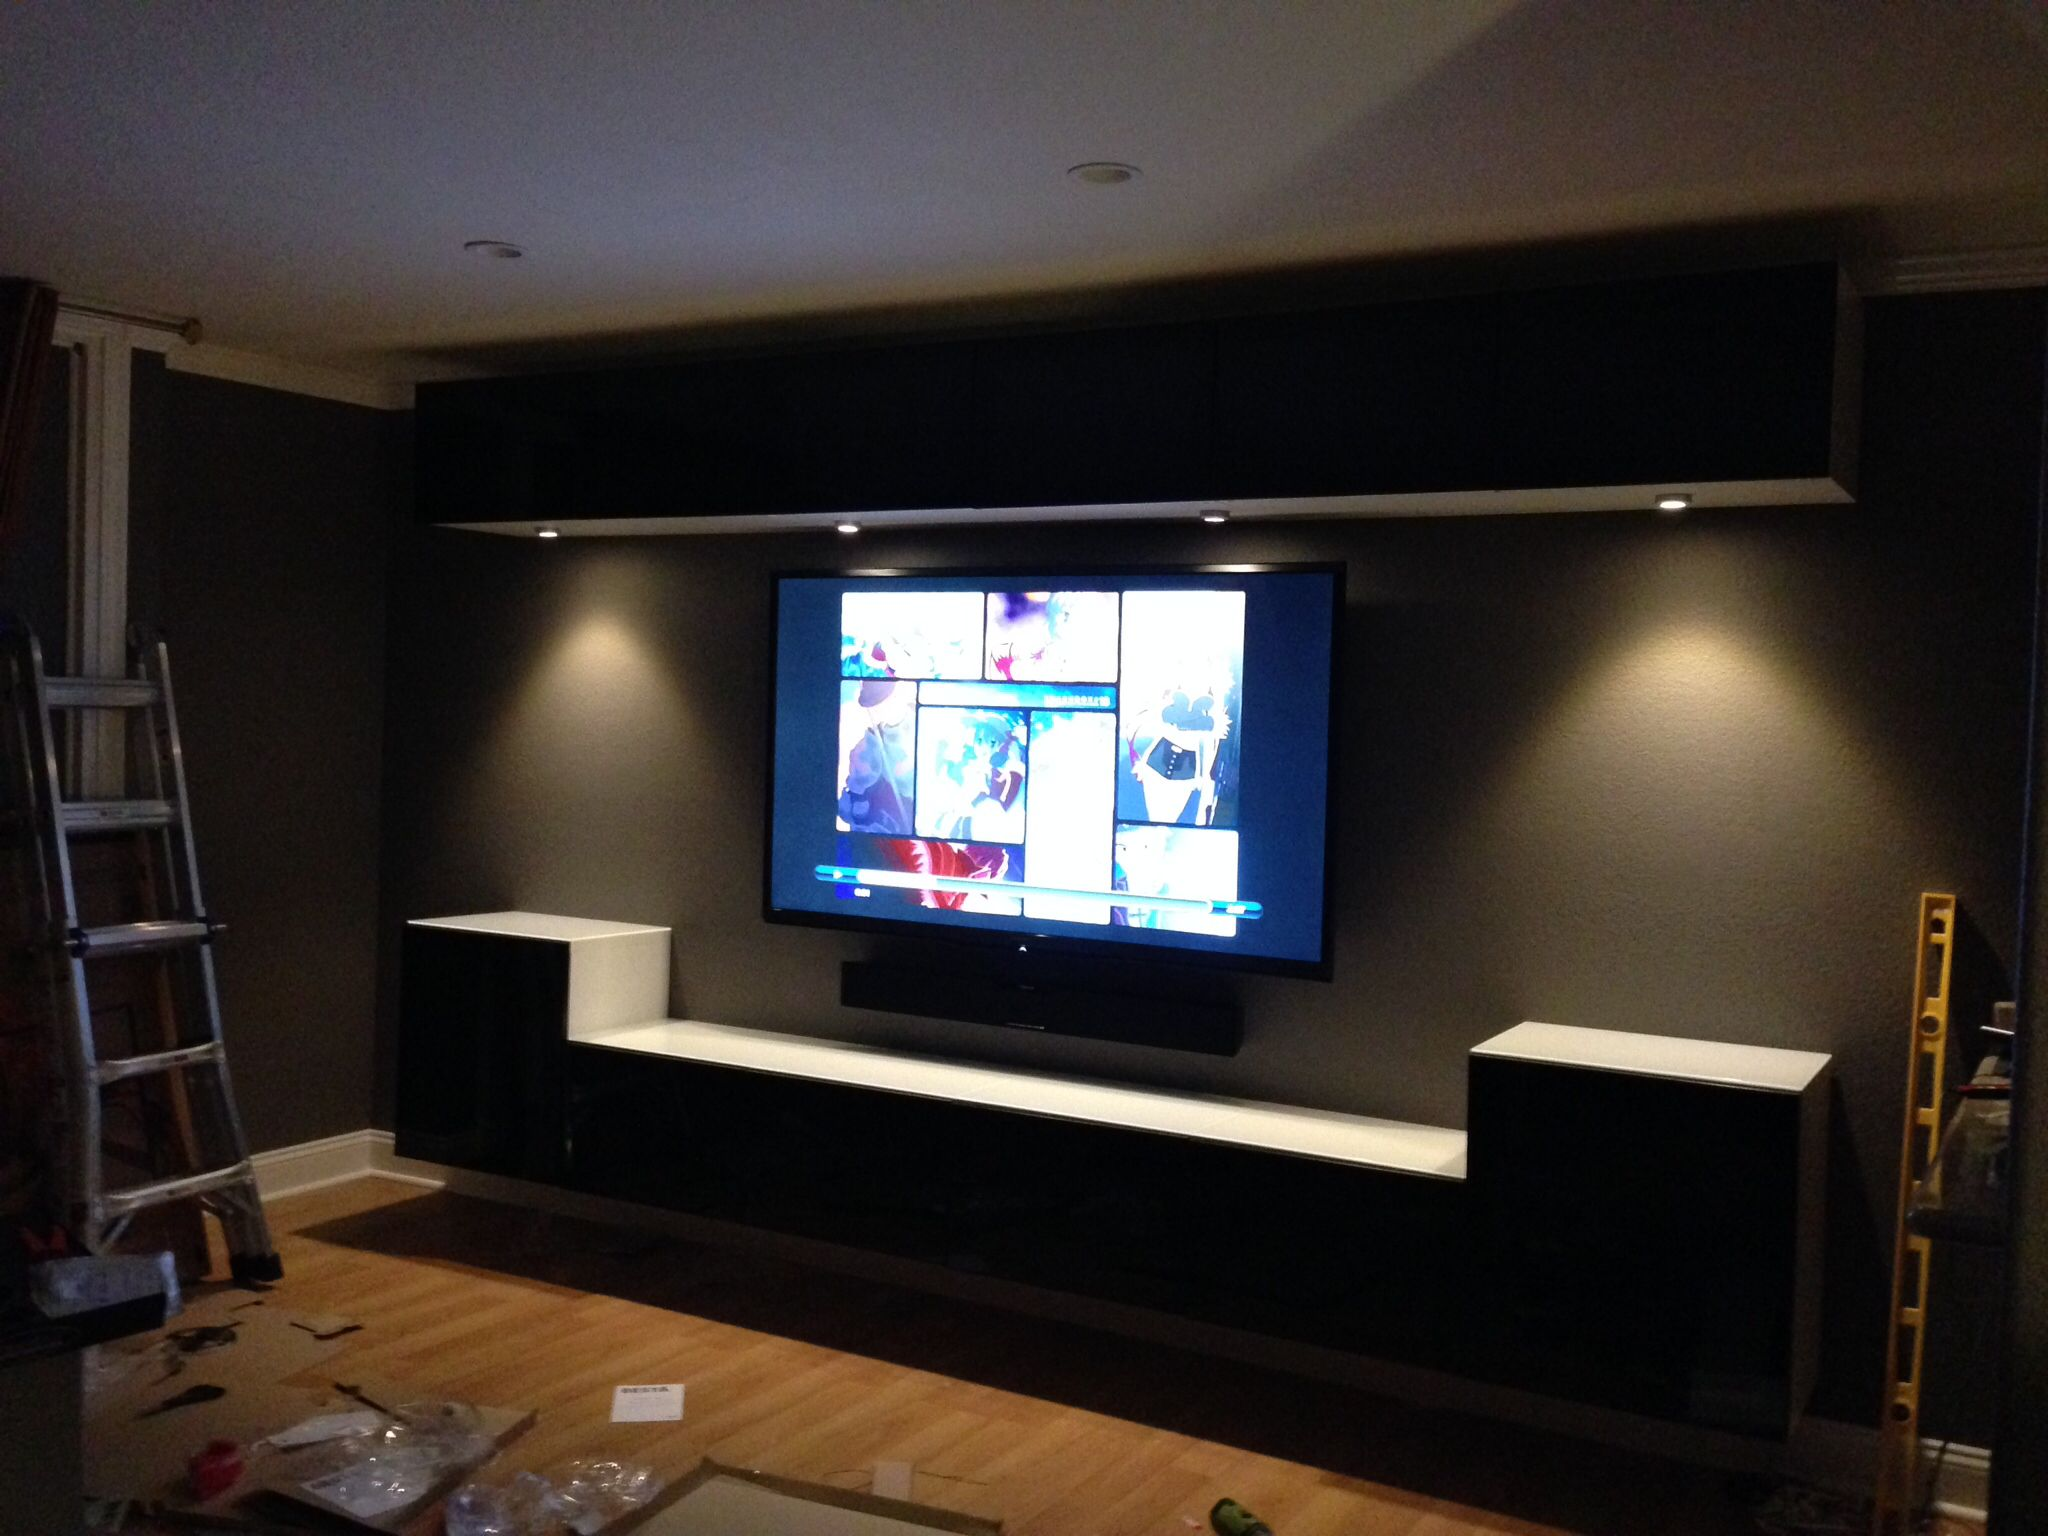 Wall Mounted Entertainment Unit Wall Mounted Ikea Bestas And Under Cabinet Lights With